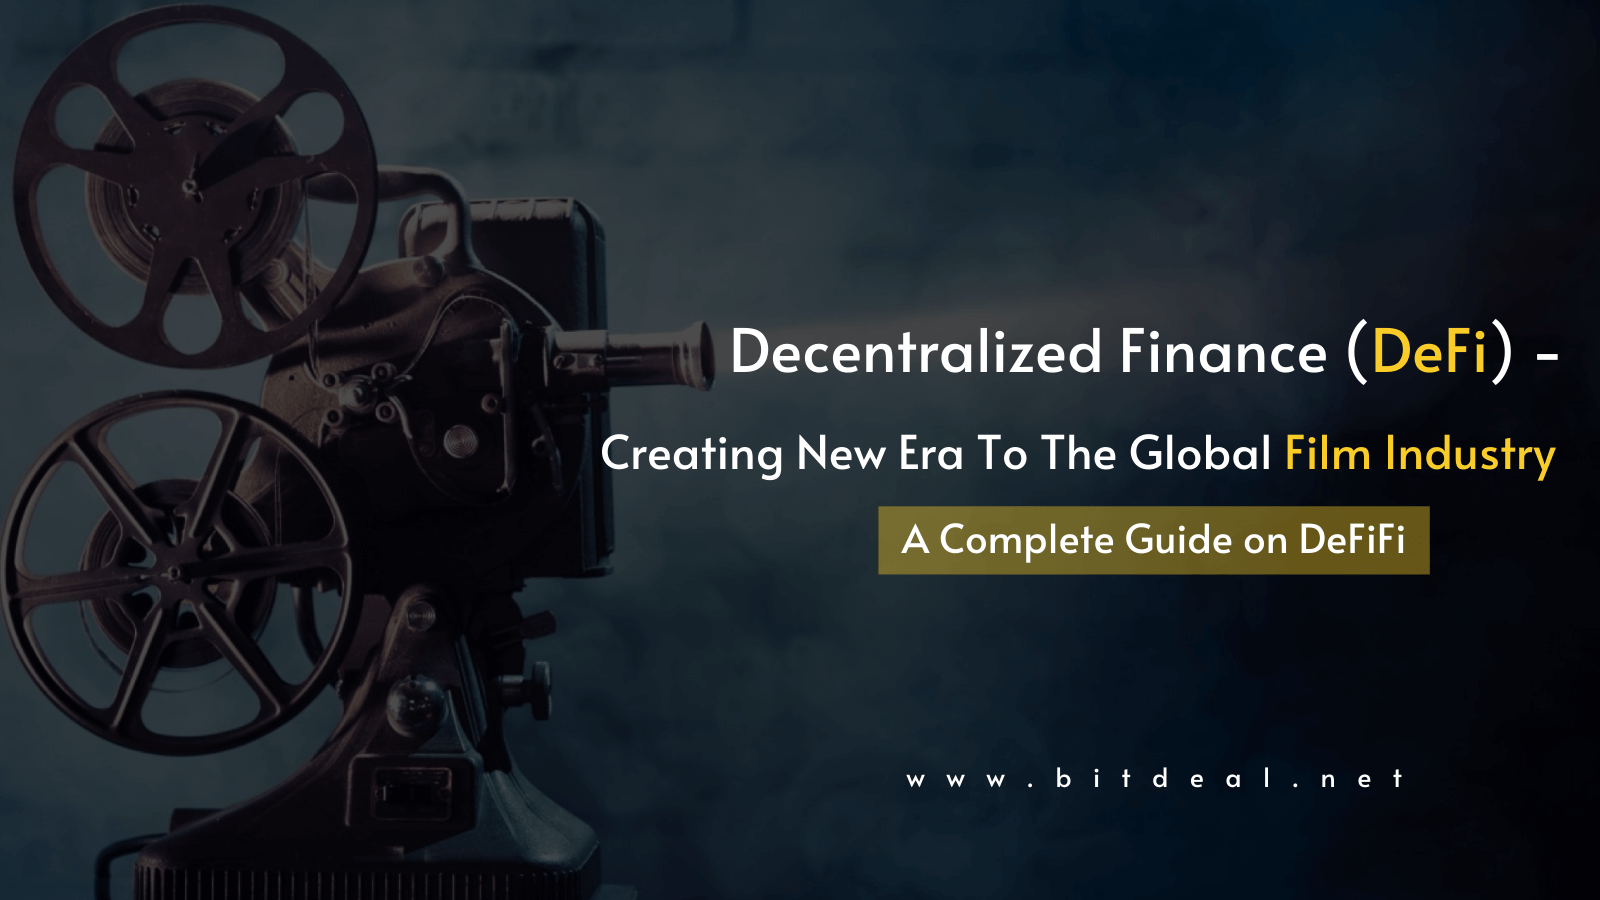 DeFi - Rejuvenating The Film Industry To Thrive in A New Golden Age